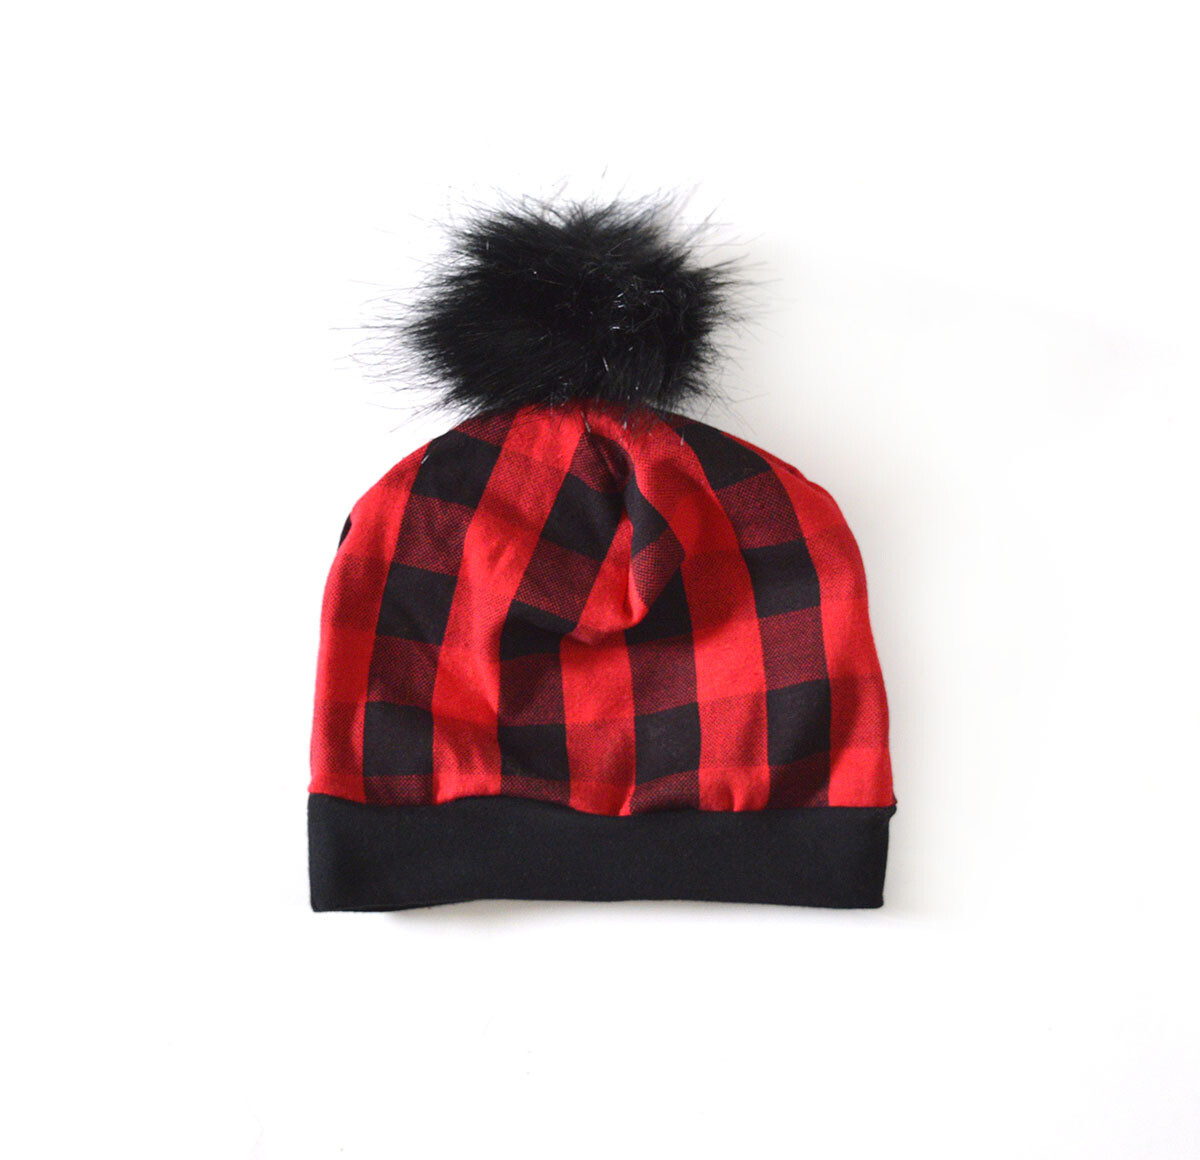 Little Sprout Pom Pom Beanie Hat in Plaid | NEW Winter 2019